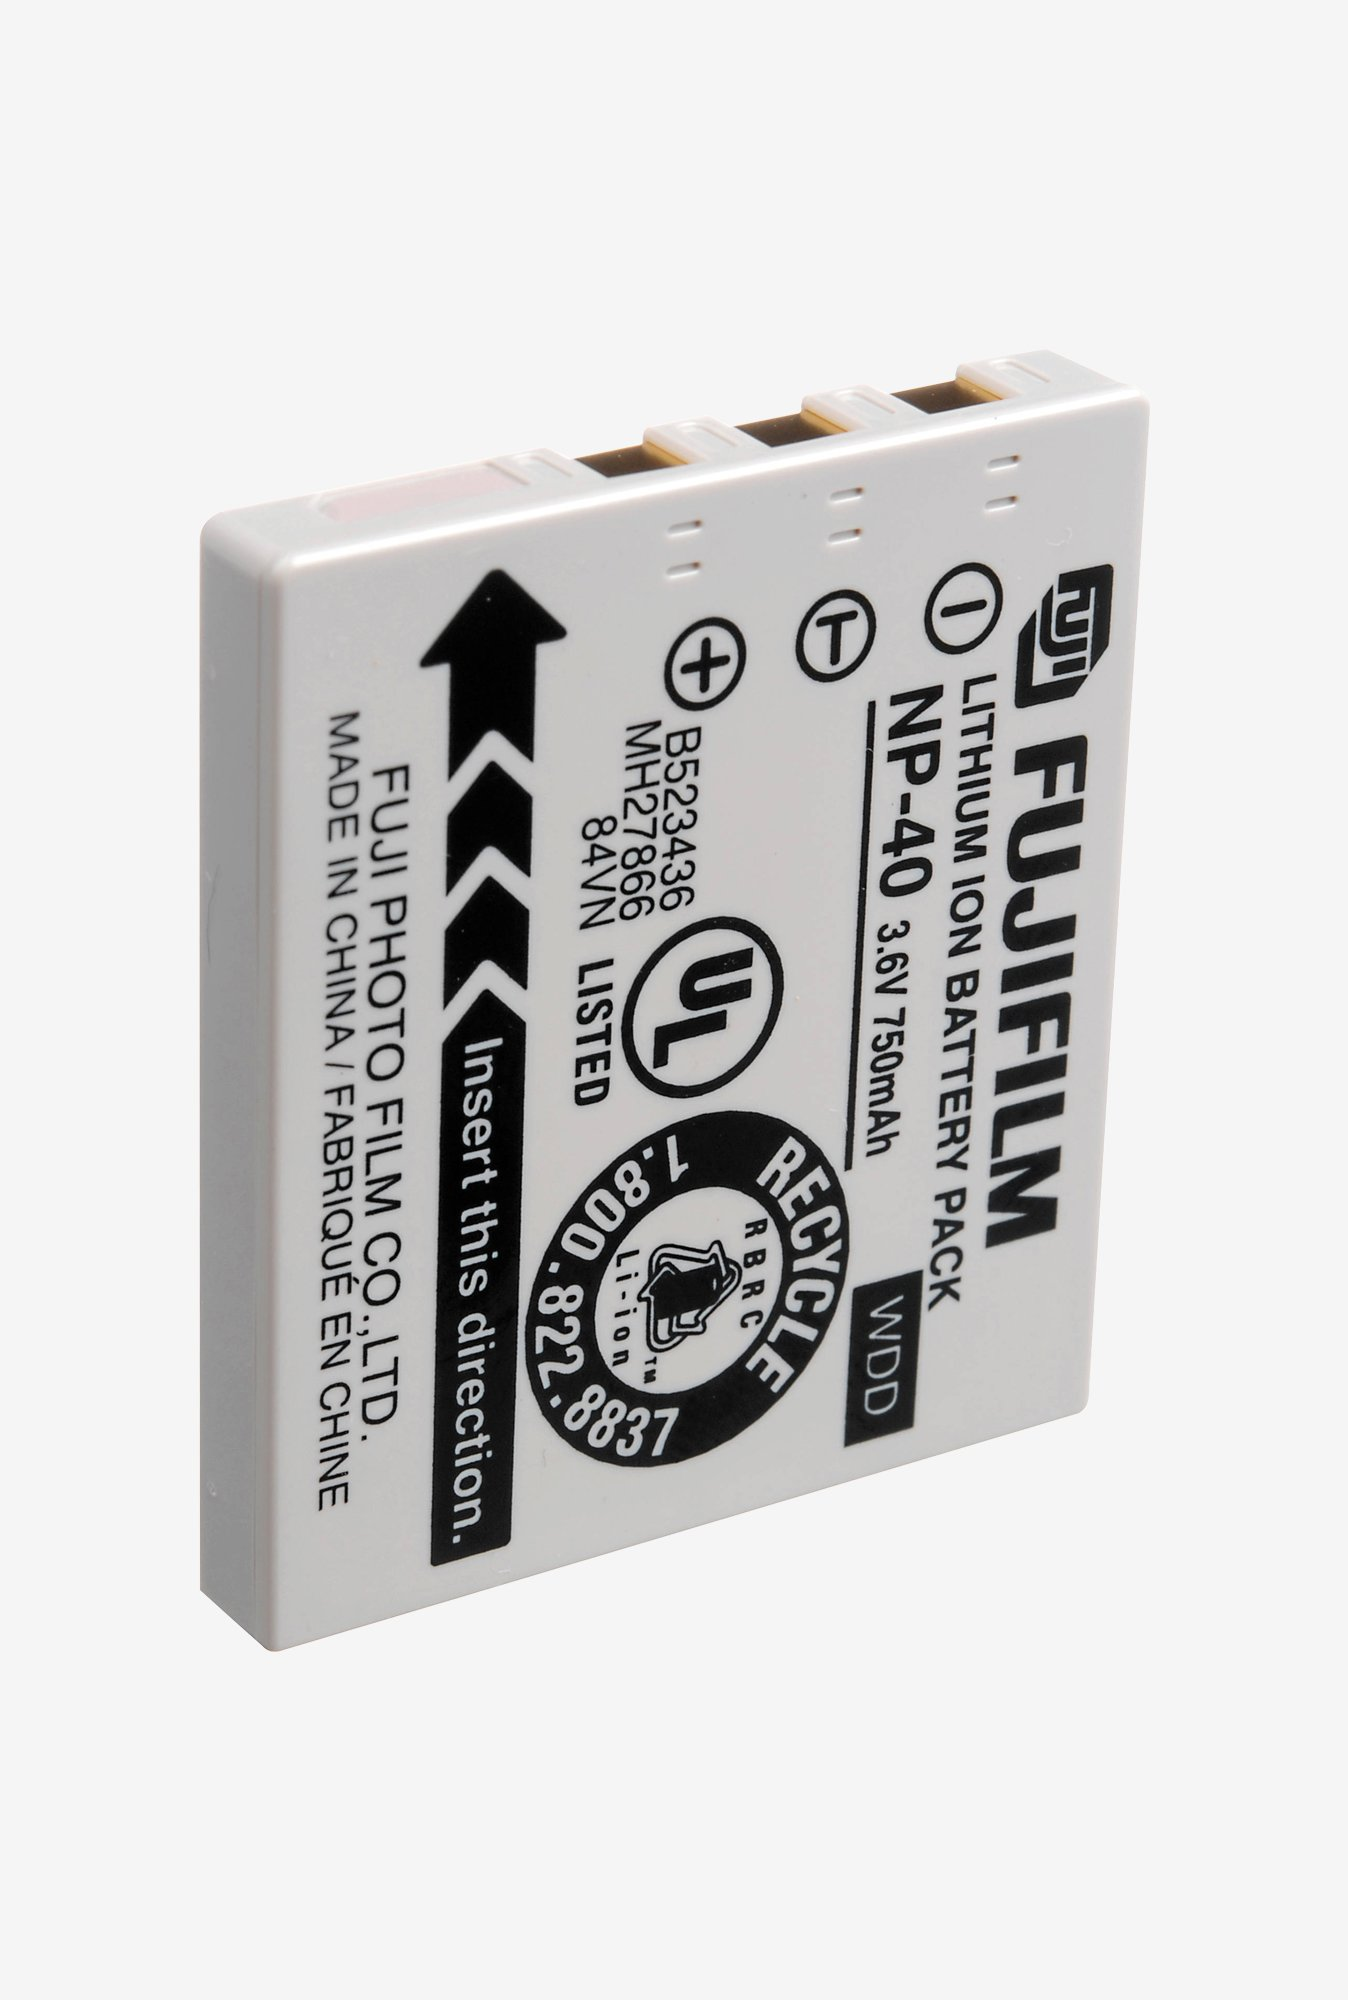 Digitek Fuji NP 40 Rechargeable Battery White